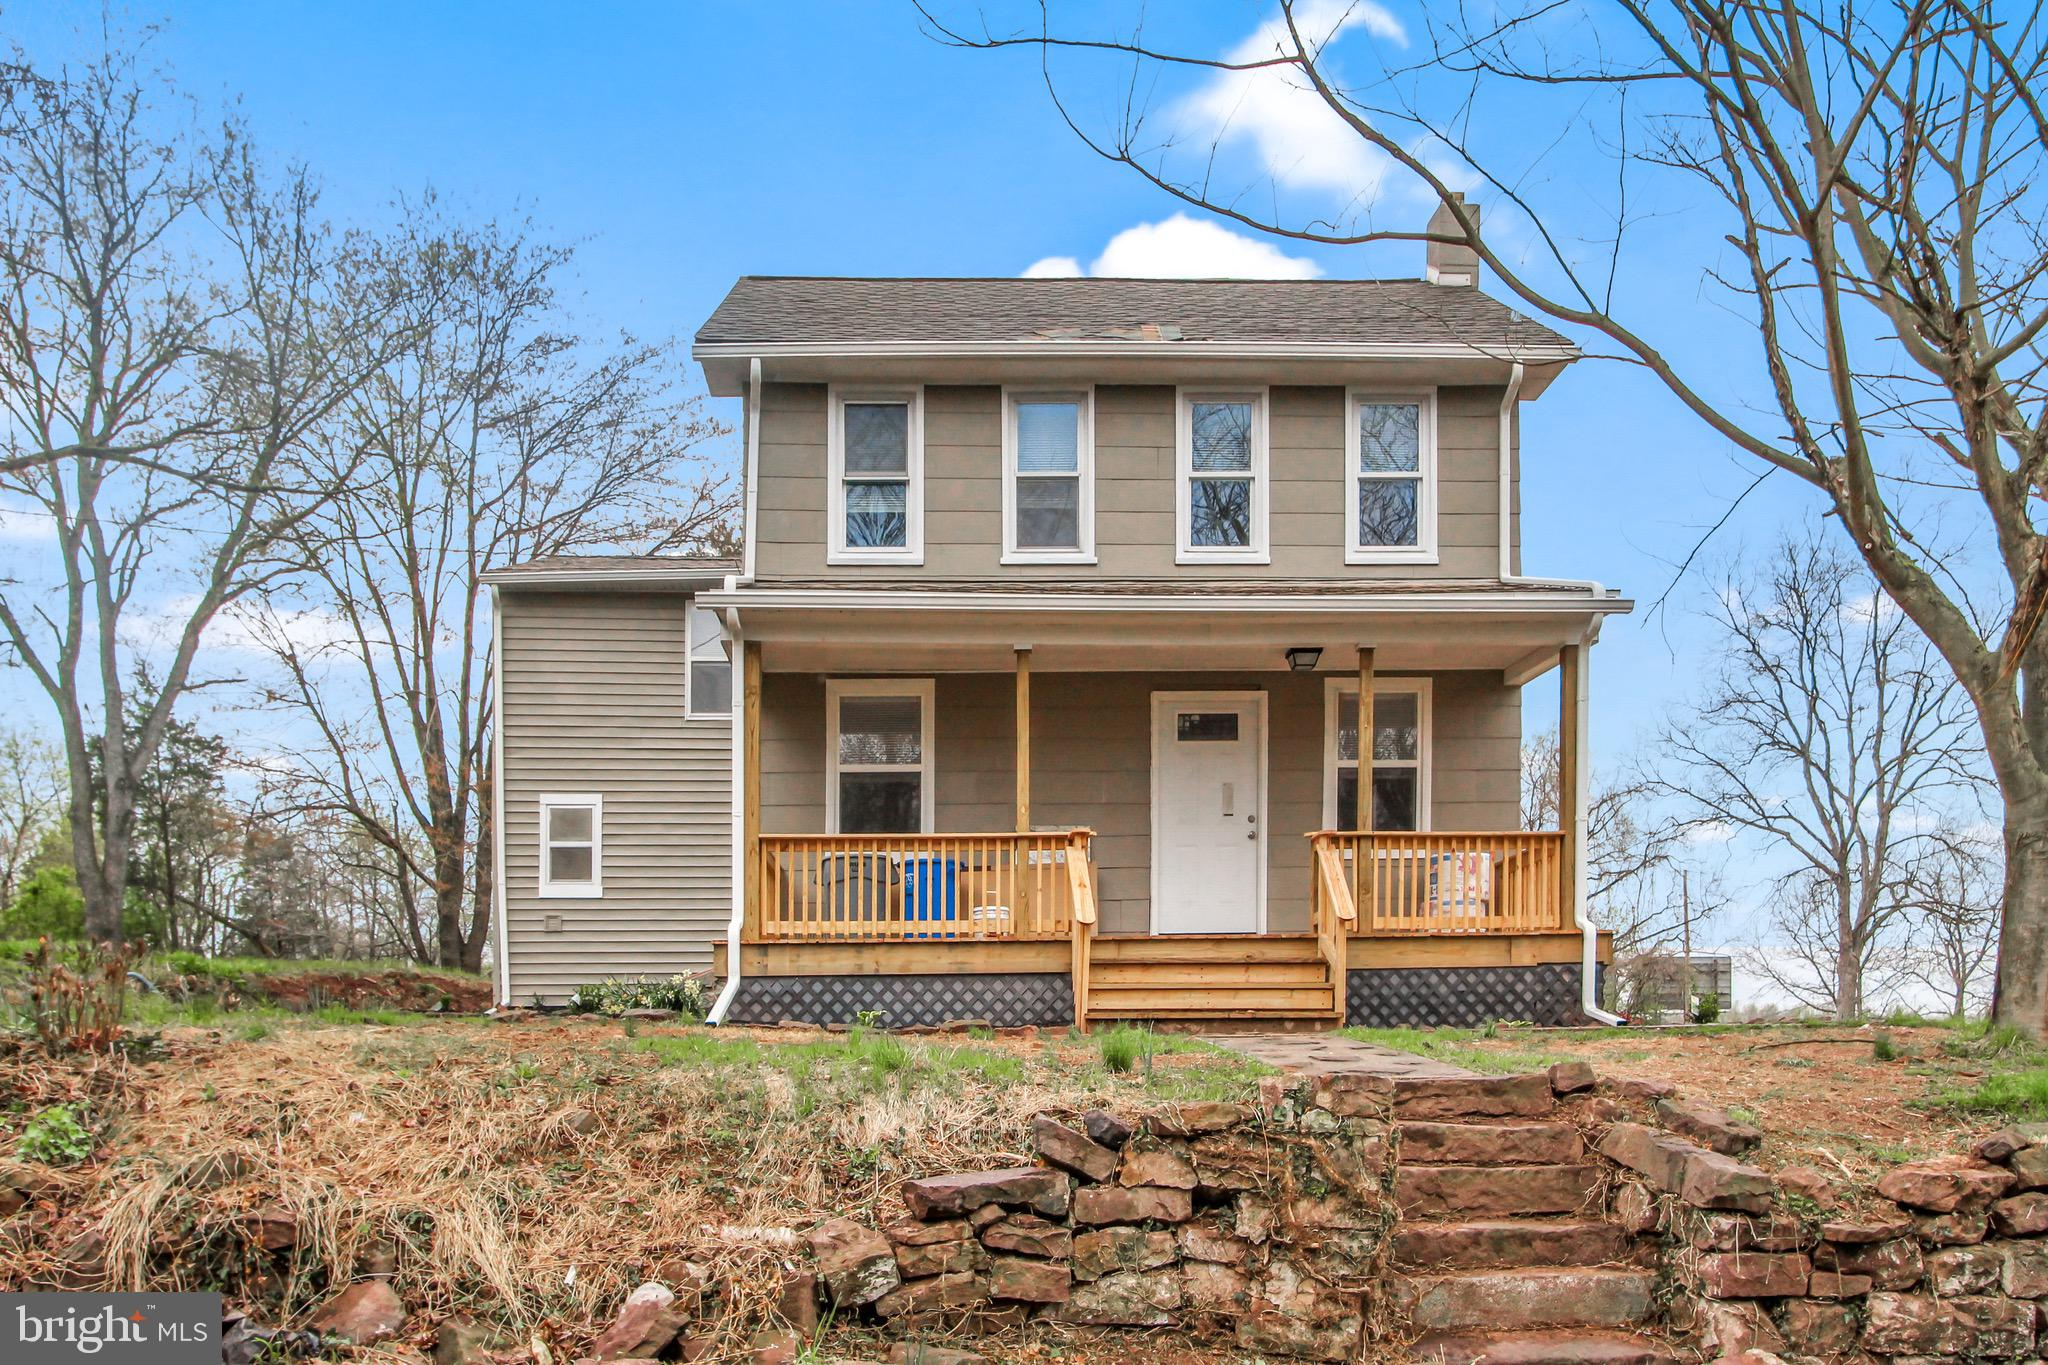 495 HYKES MILL ROAD, MANCHESTER, PA 17345